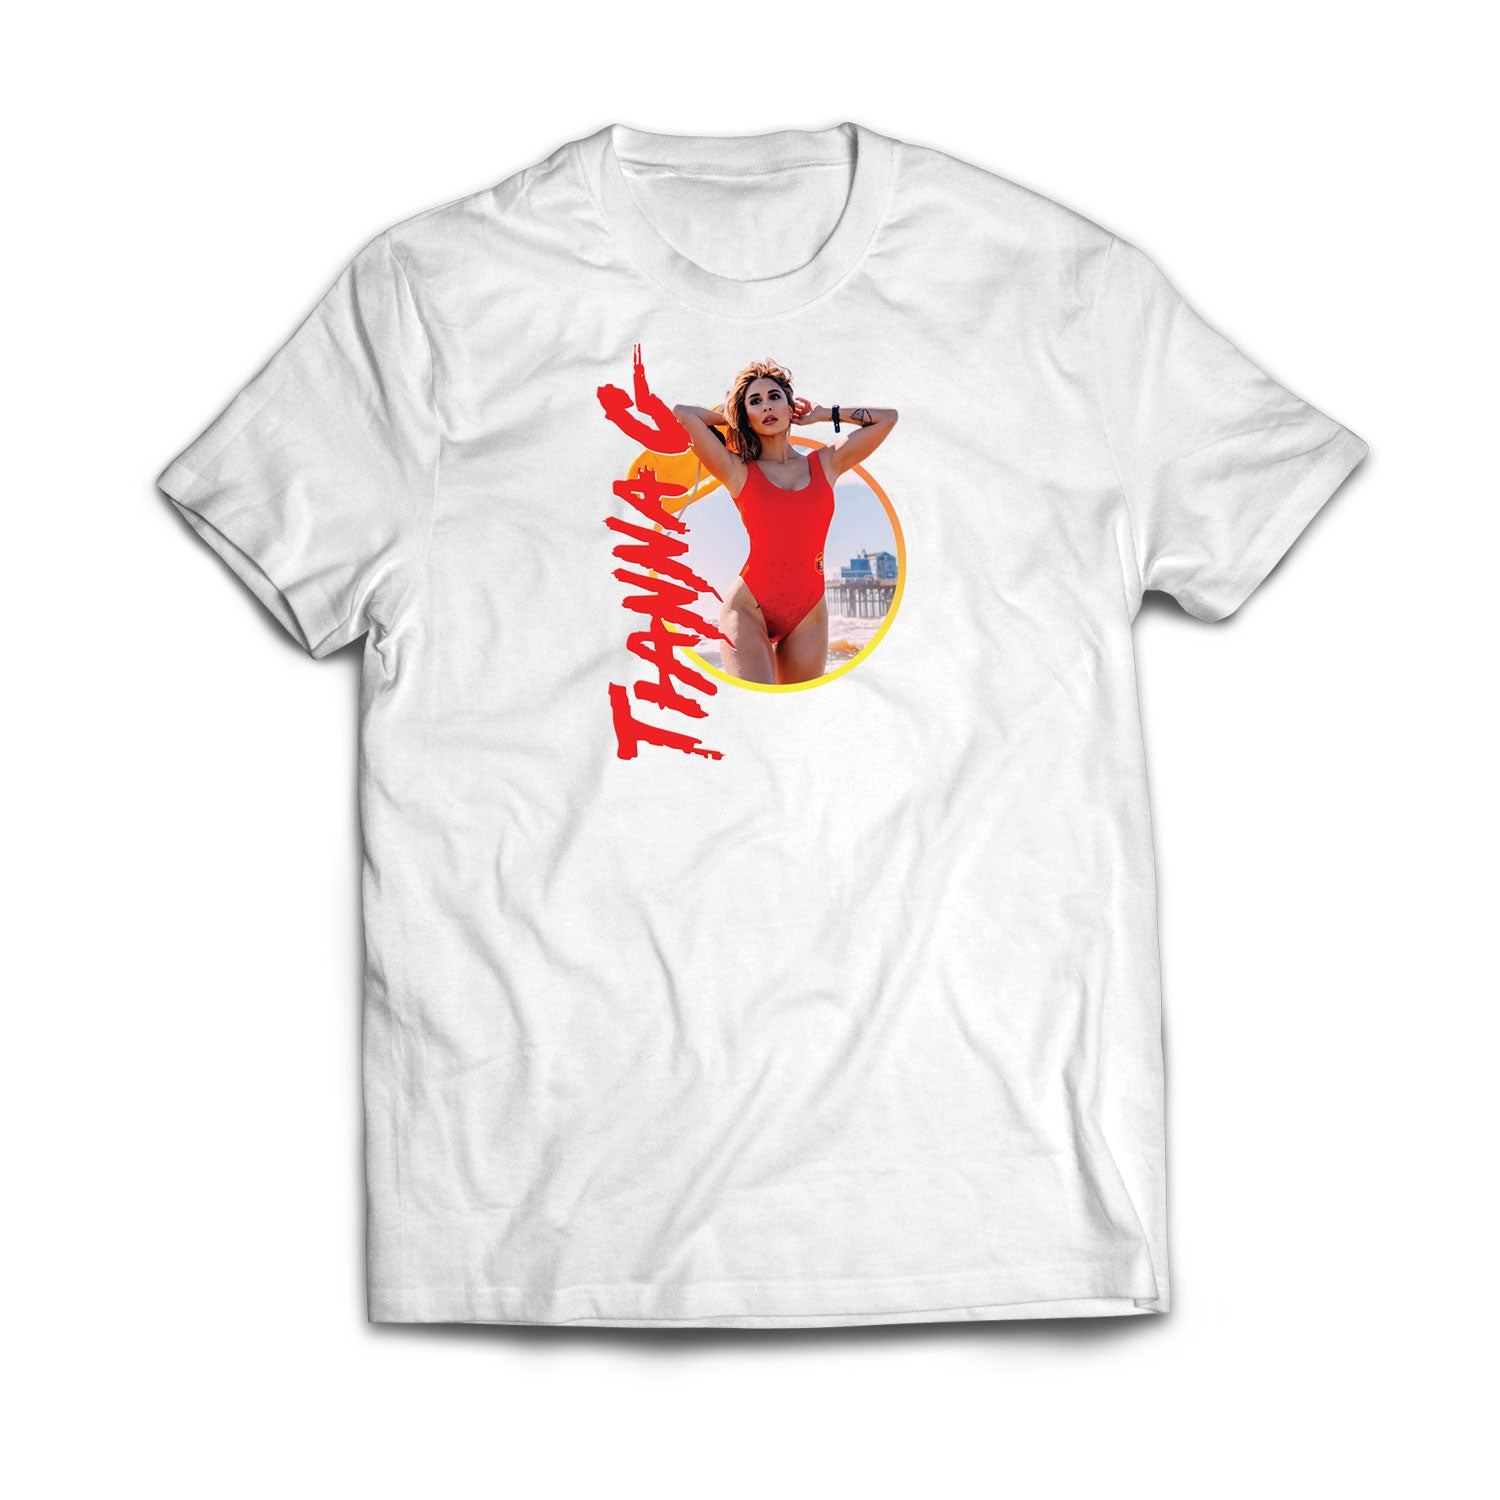 BAYWATCH T-SHIRT WHITE